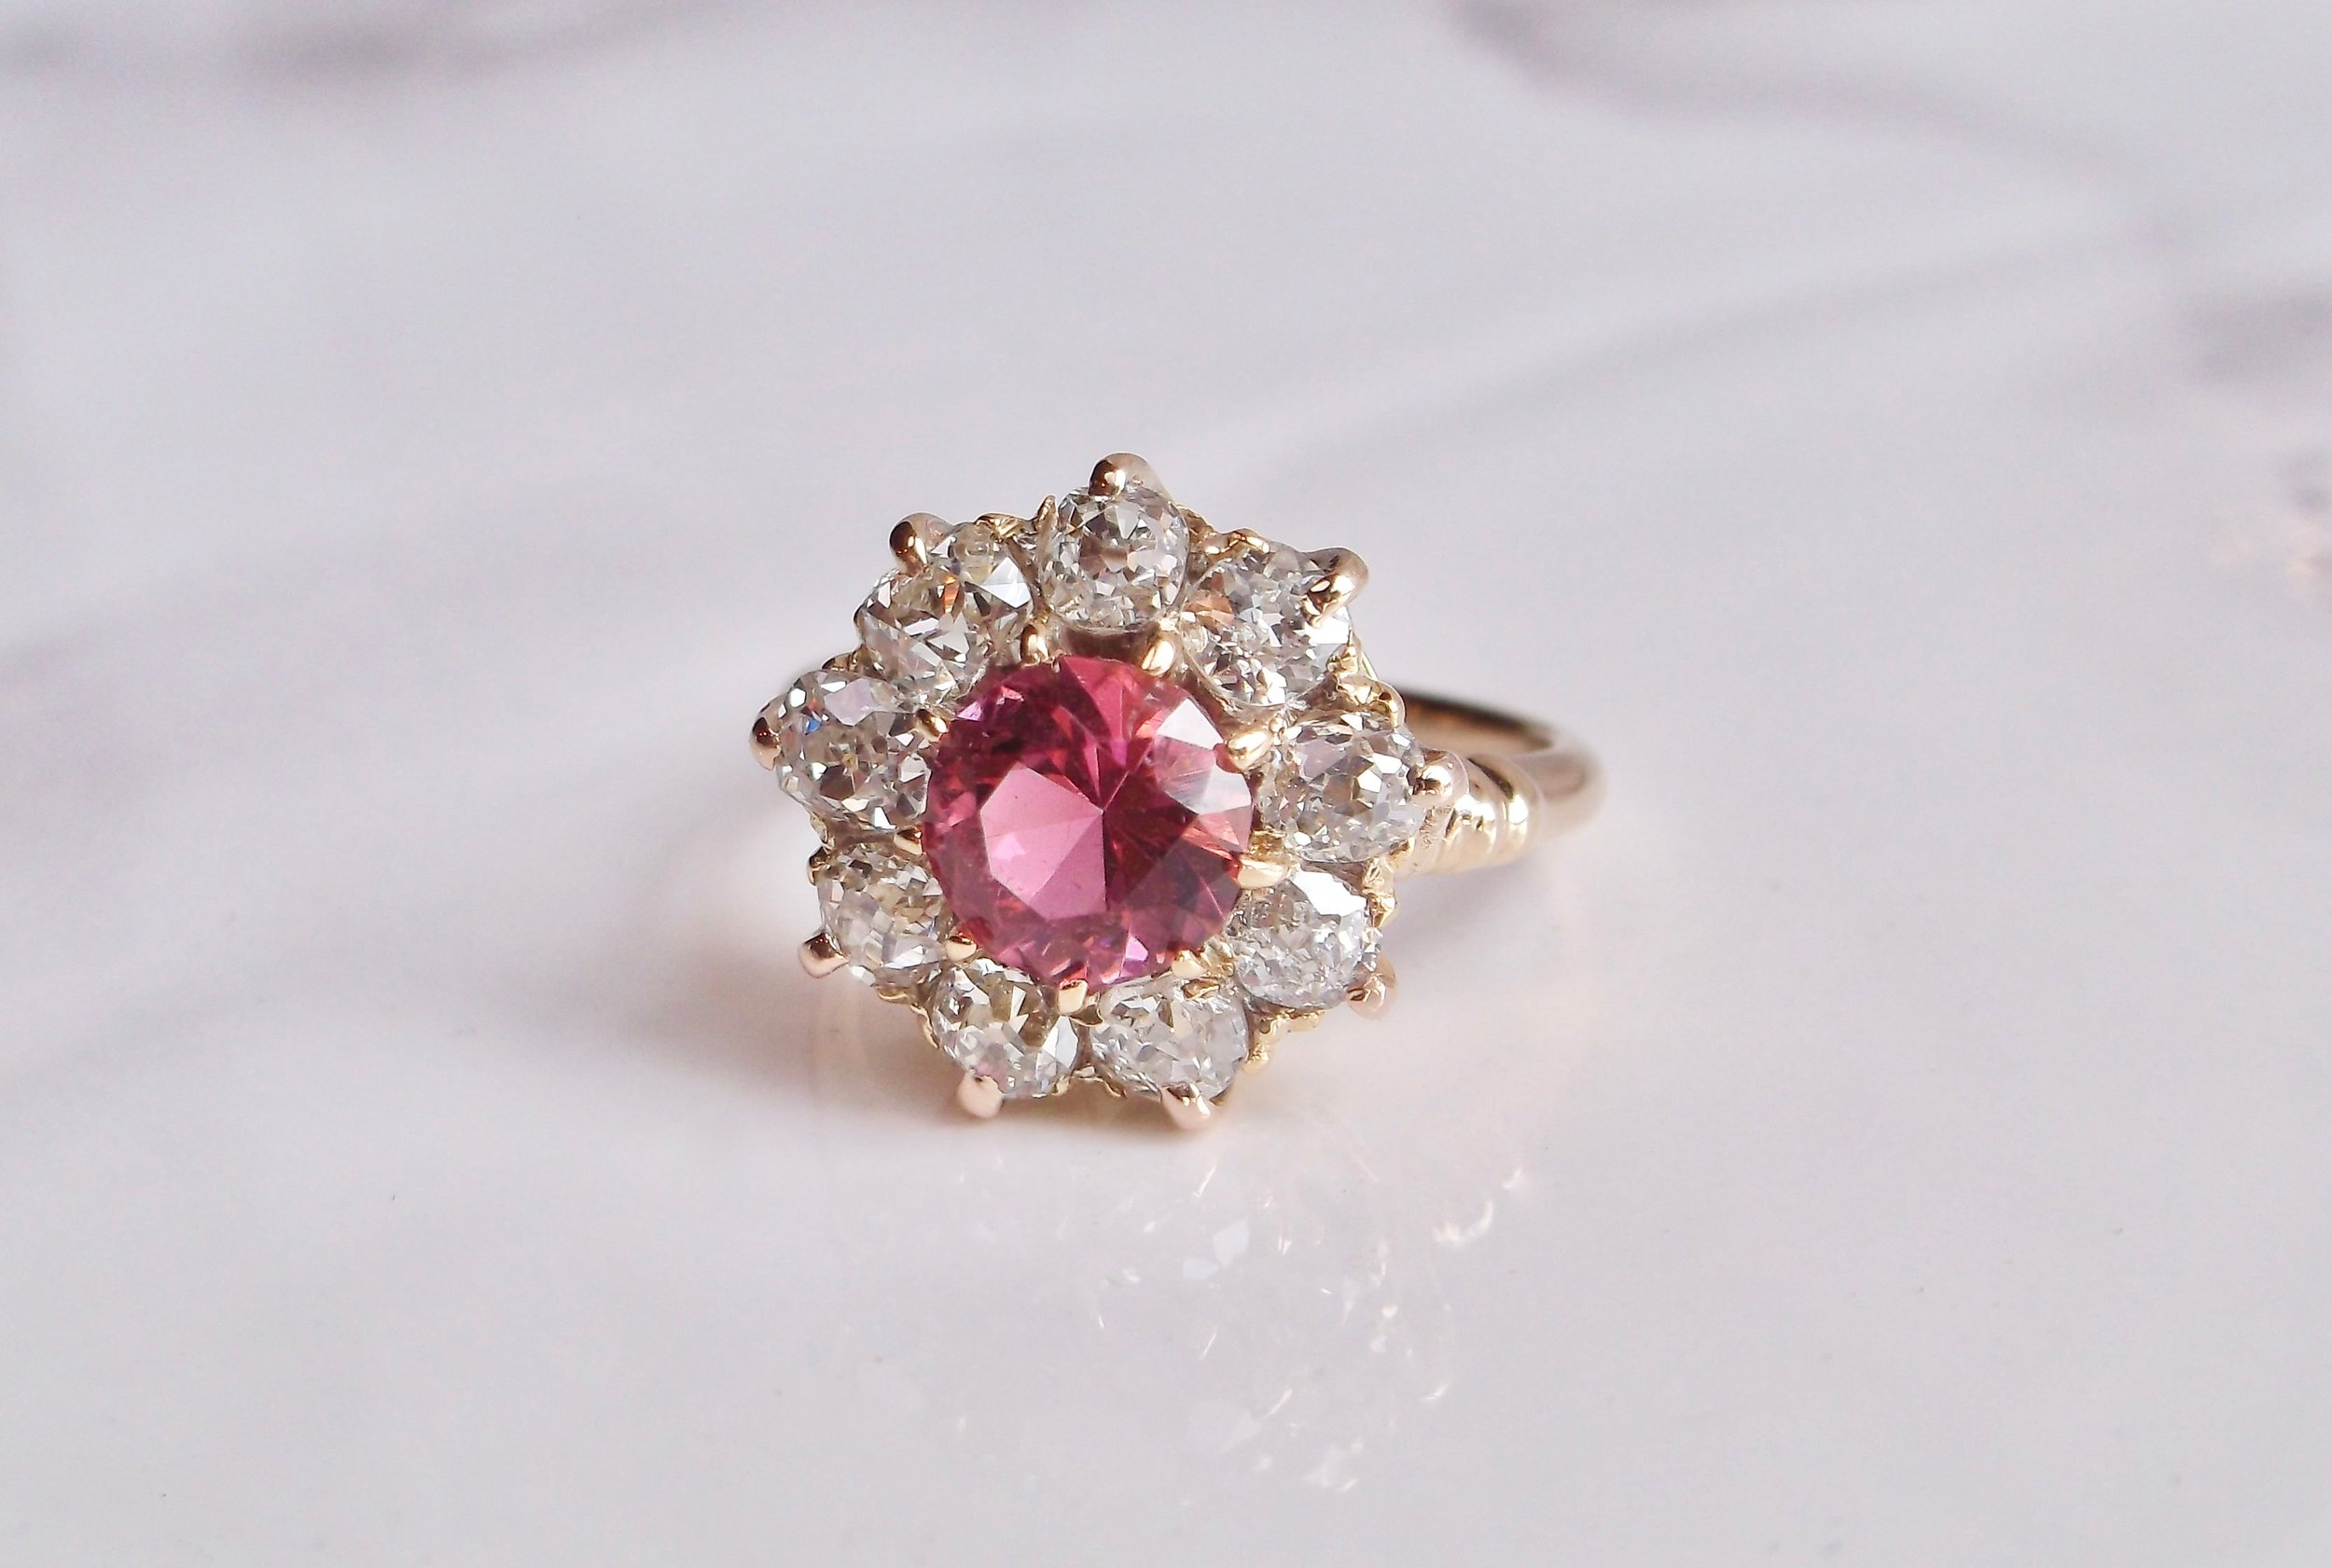 Add a pop of pink to your wardrobe with this lovely pink tourmaline, Old Mine cut diamond and yellow gold ring!  The ring features a center round brilliant cut pink tourmaline, surrounded by 2.00 carats in Old Mine cut diamonds.  Shop this beautiful ring  HERE